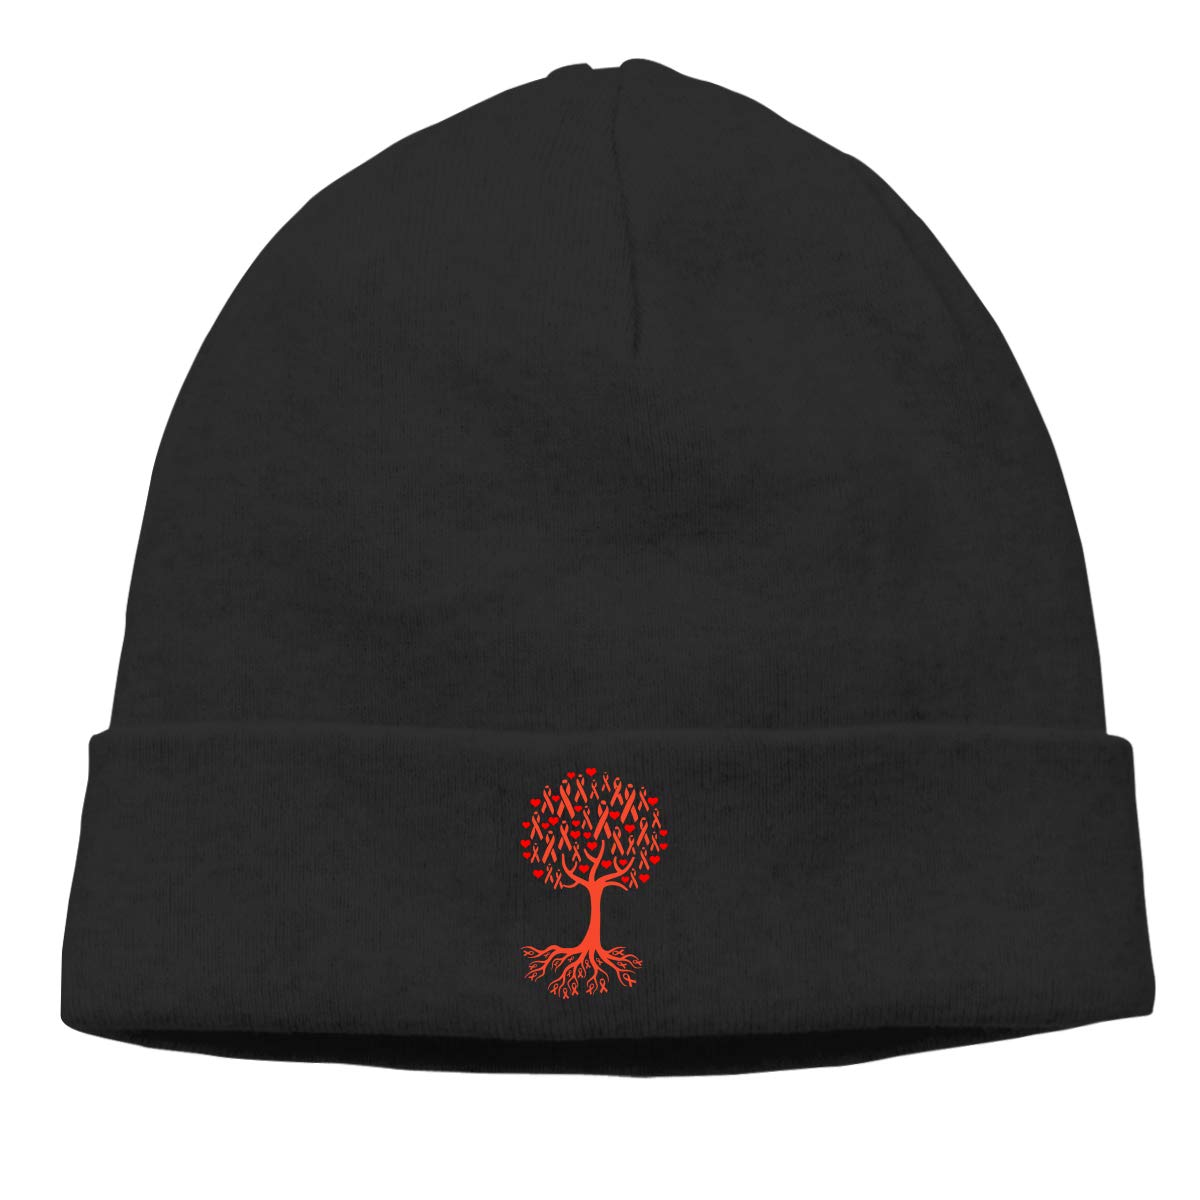 Thin Stretchy /& Soft Winter Cap Kidney Cancer Awareness Tree Roots Women Men Solid Color Beanie Hat